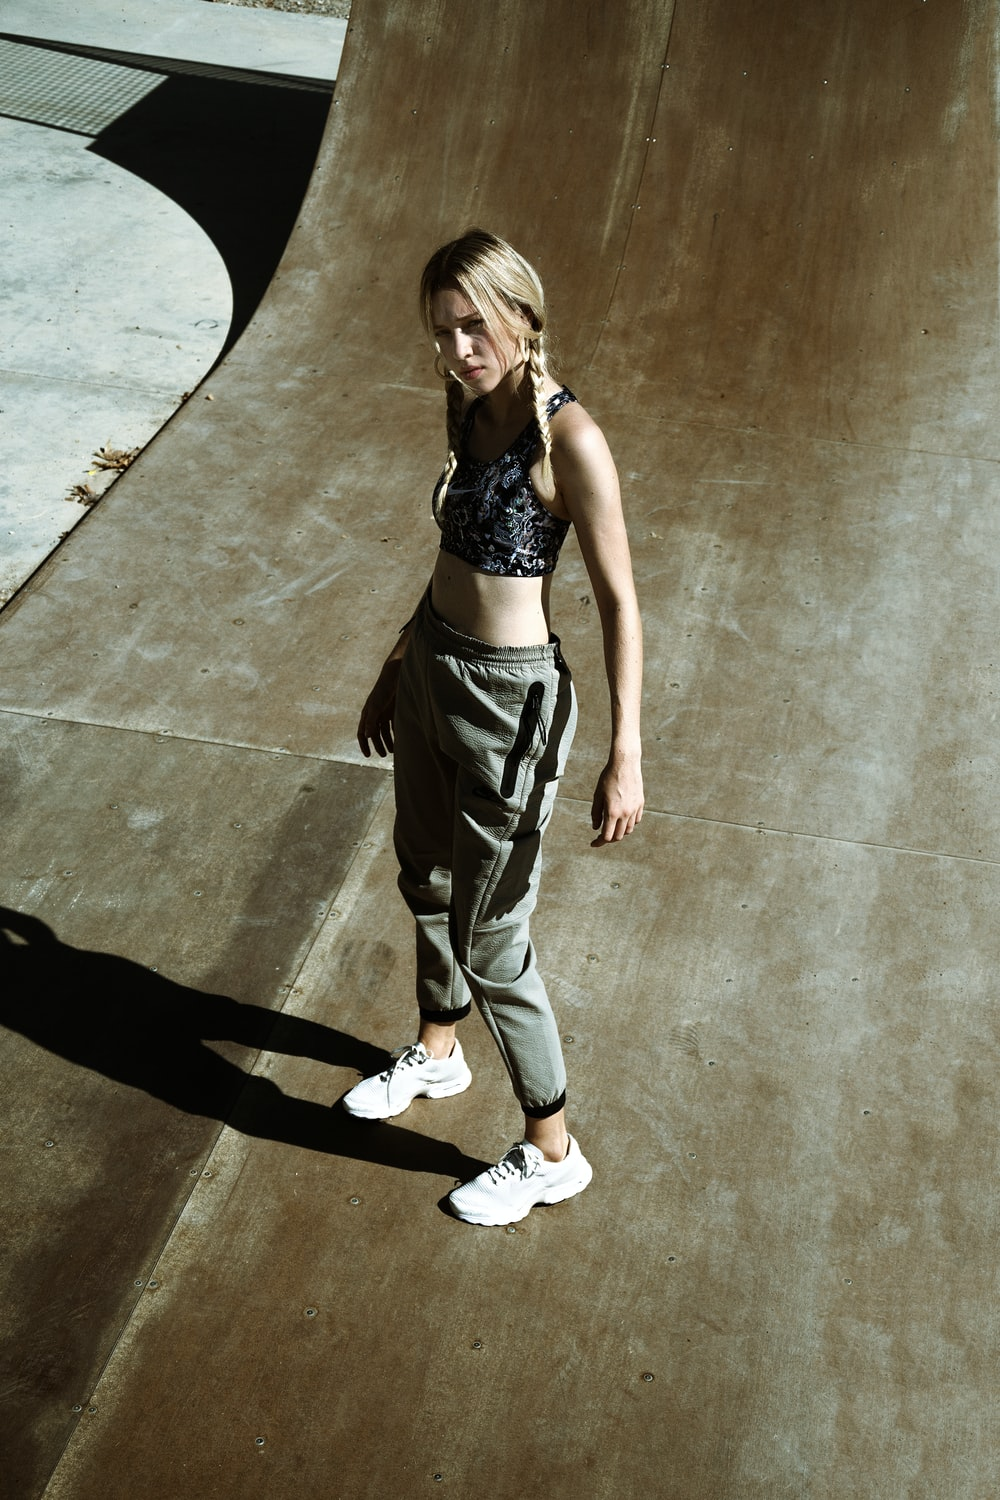 woman in black brassiere and gray pants standing on gray concrete floor